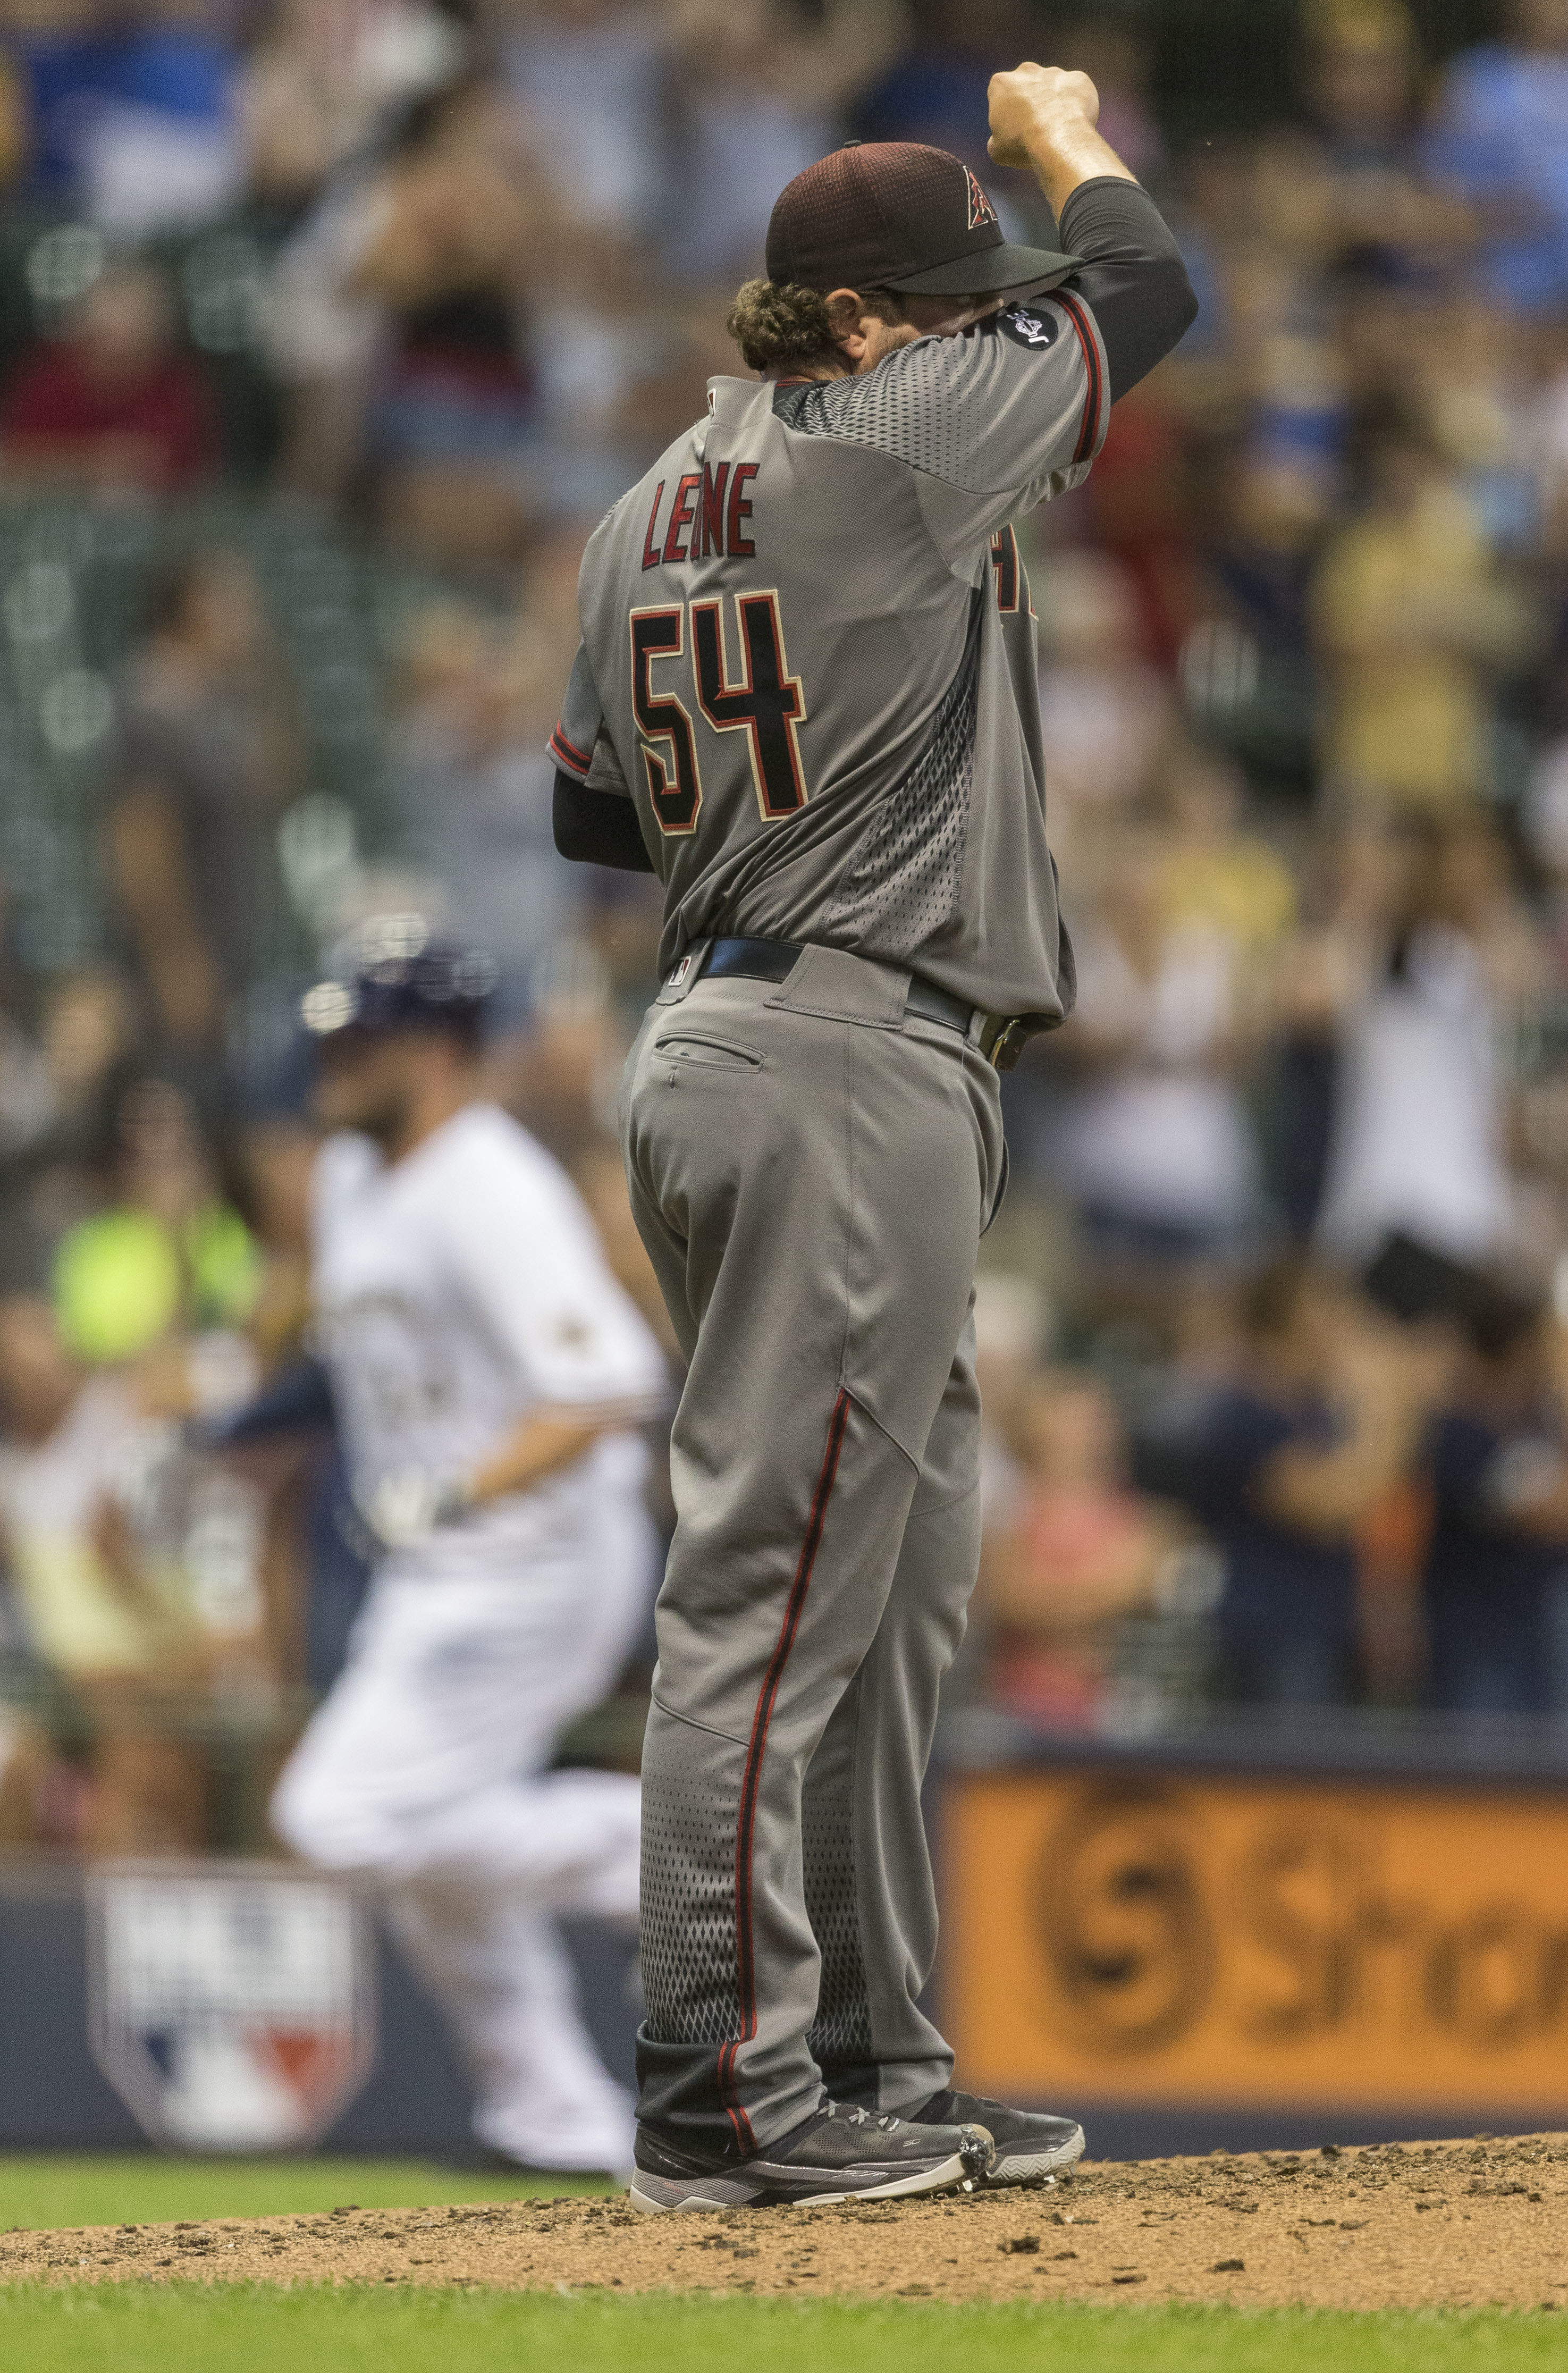 Milwaukee Brewers' Andy Wilkins rounds third after hitting a solo home run off of Arizona Diamondbacks' Dominic Leone during the sixth inning of a baseball game Monday, July 25, 2016, in Milwaukee. (AP Photo/Tom Lynn)